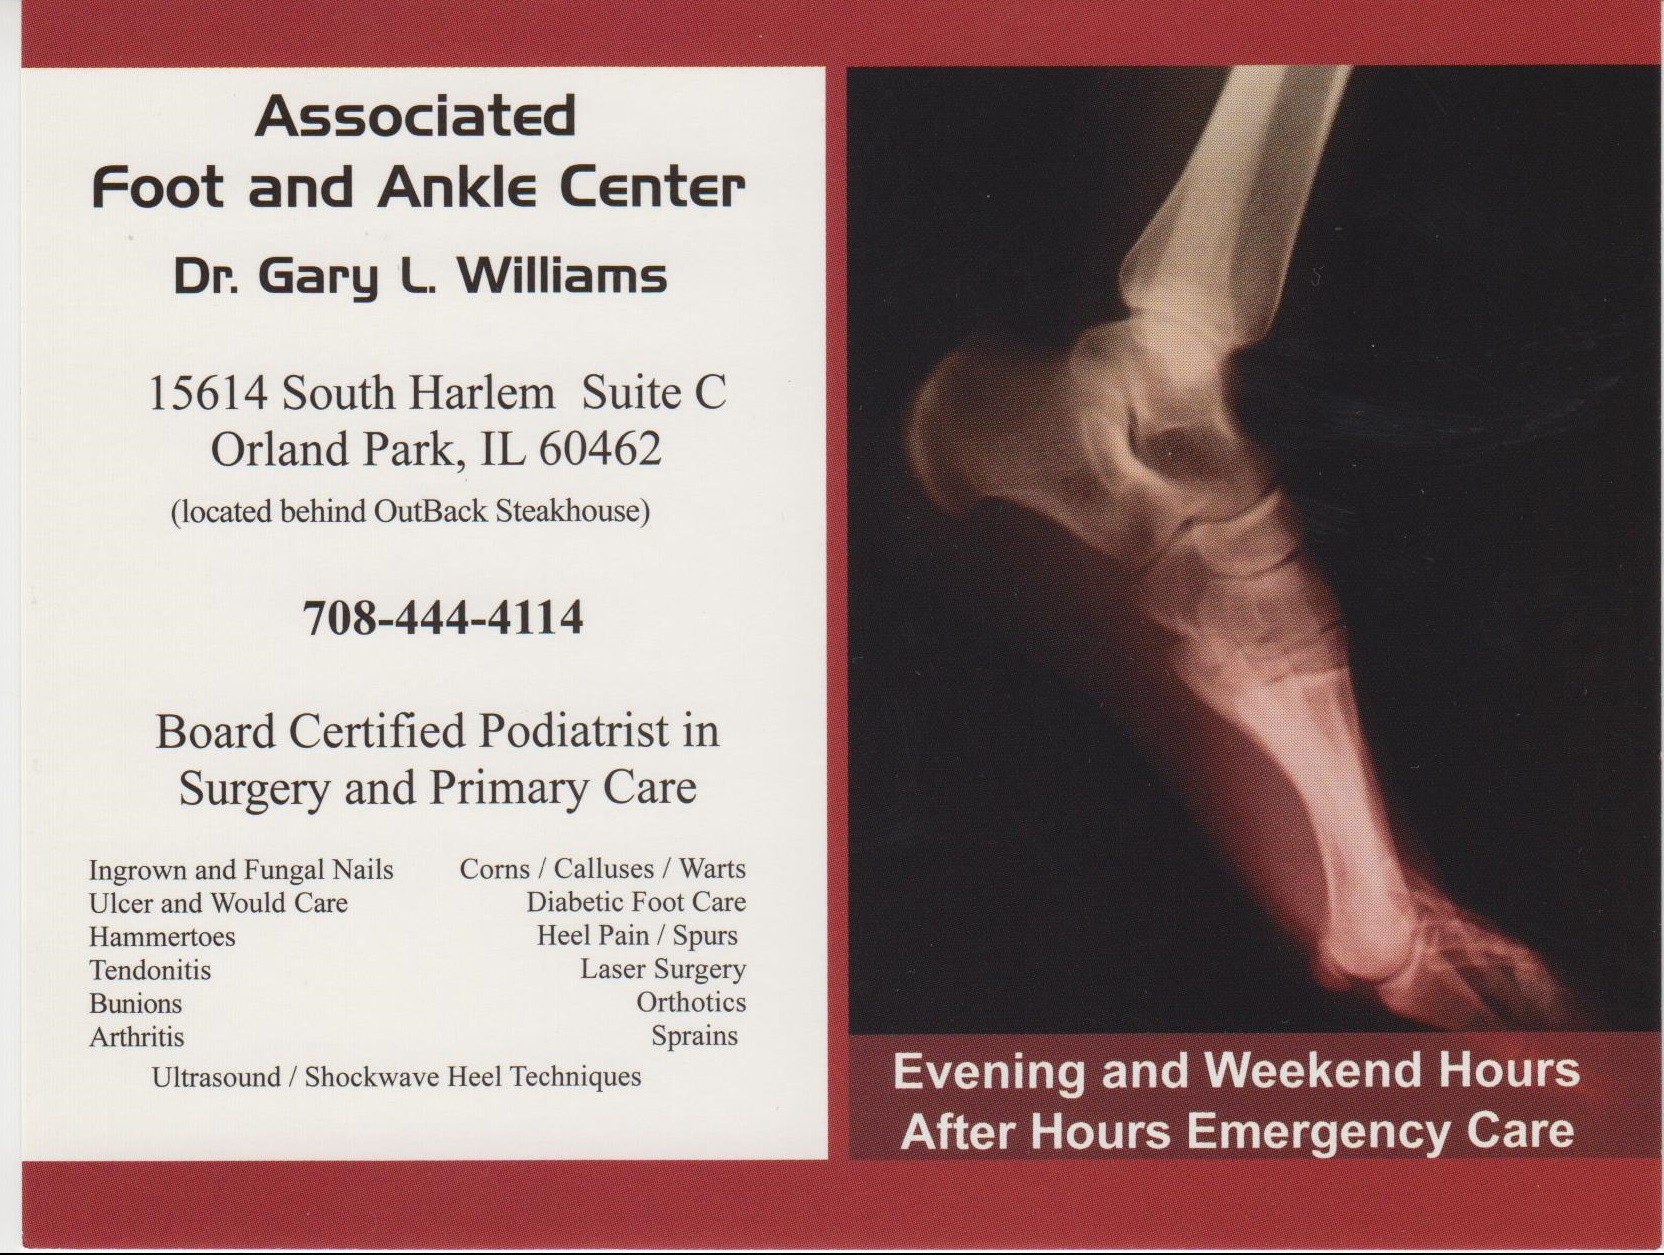 Associated Foot and Ankle Center